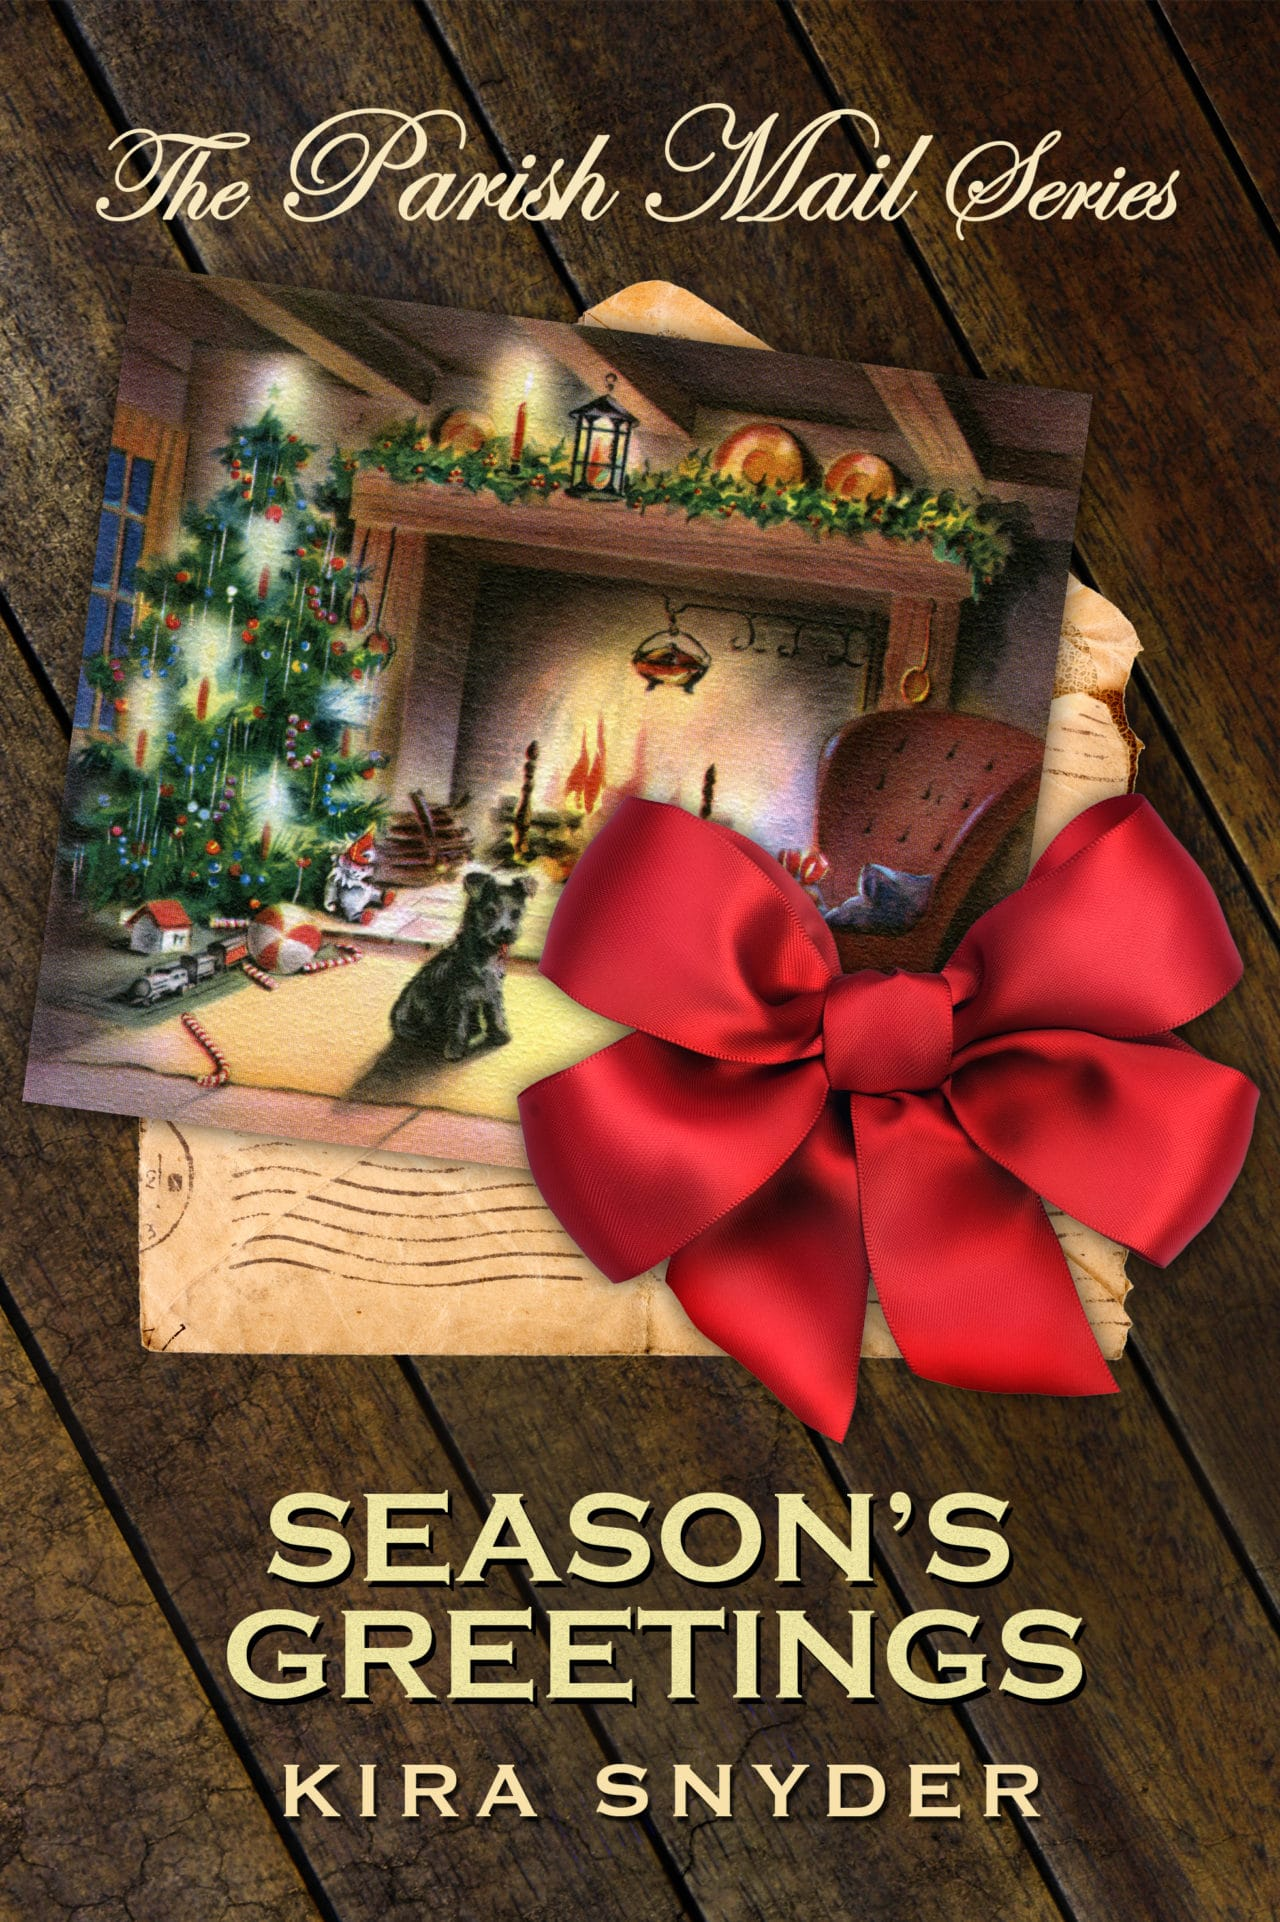 Cover Reveal and Giveaway: Kira Snyder's Season's Greetings, A Parish Mail Short